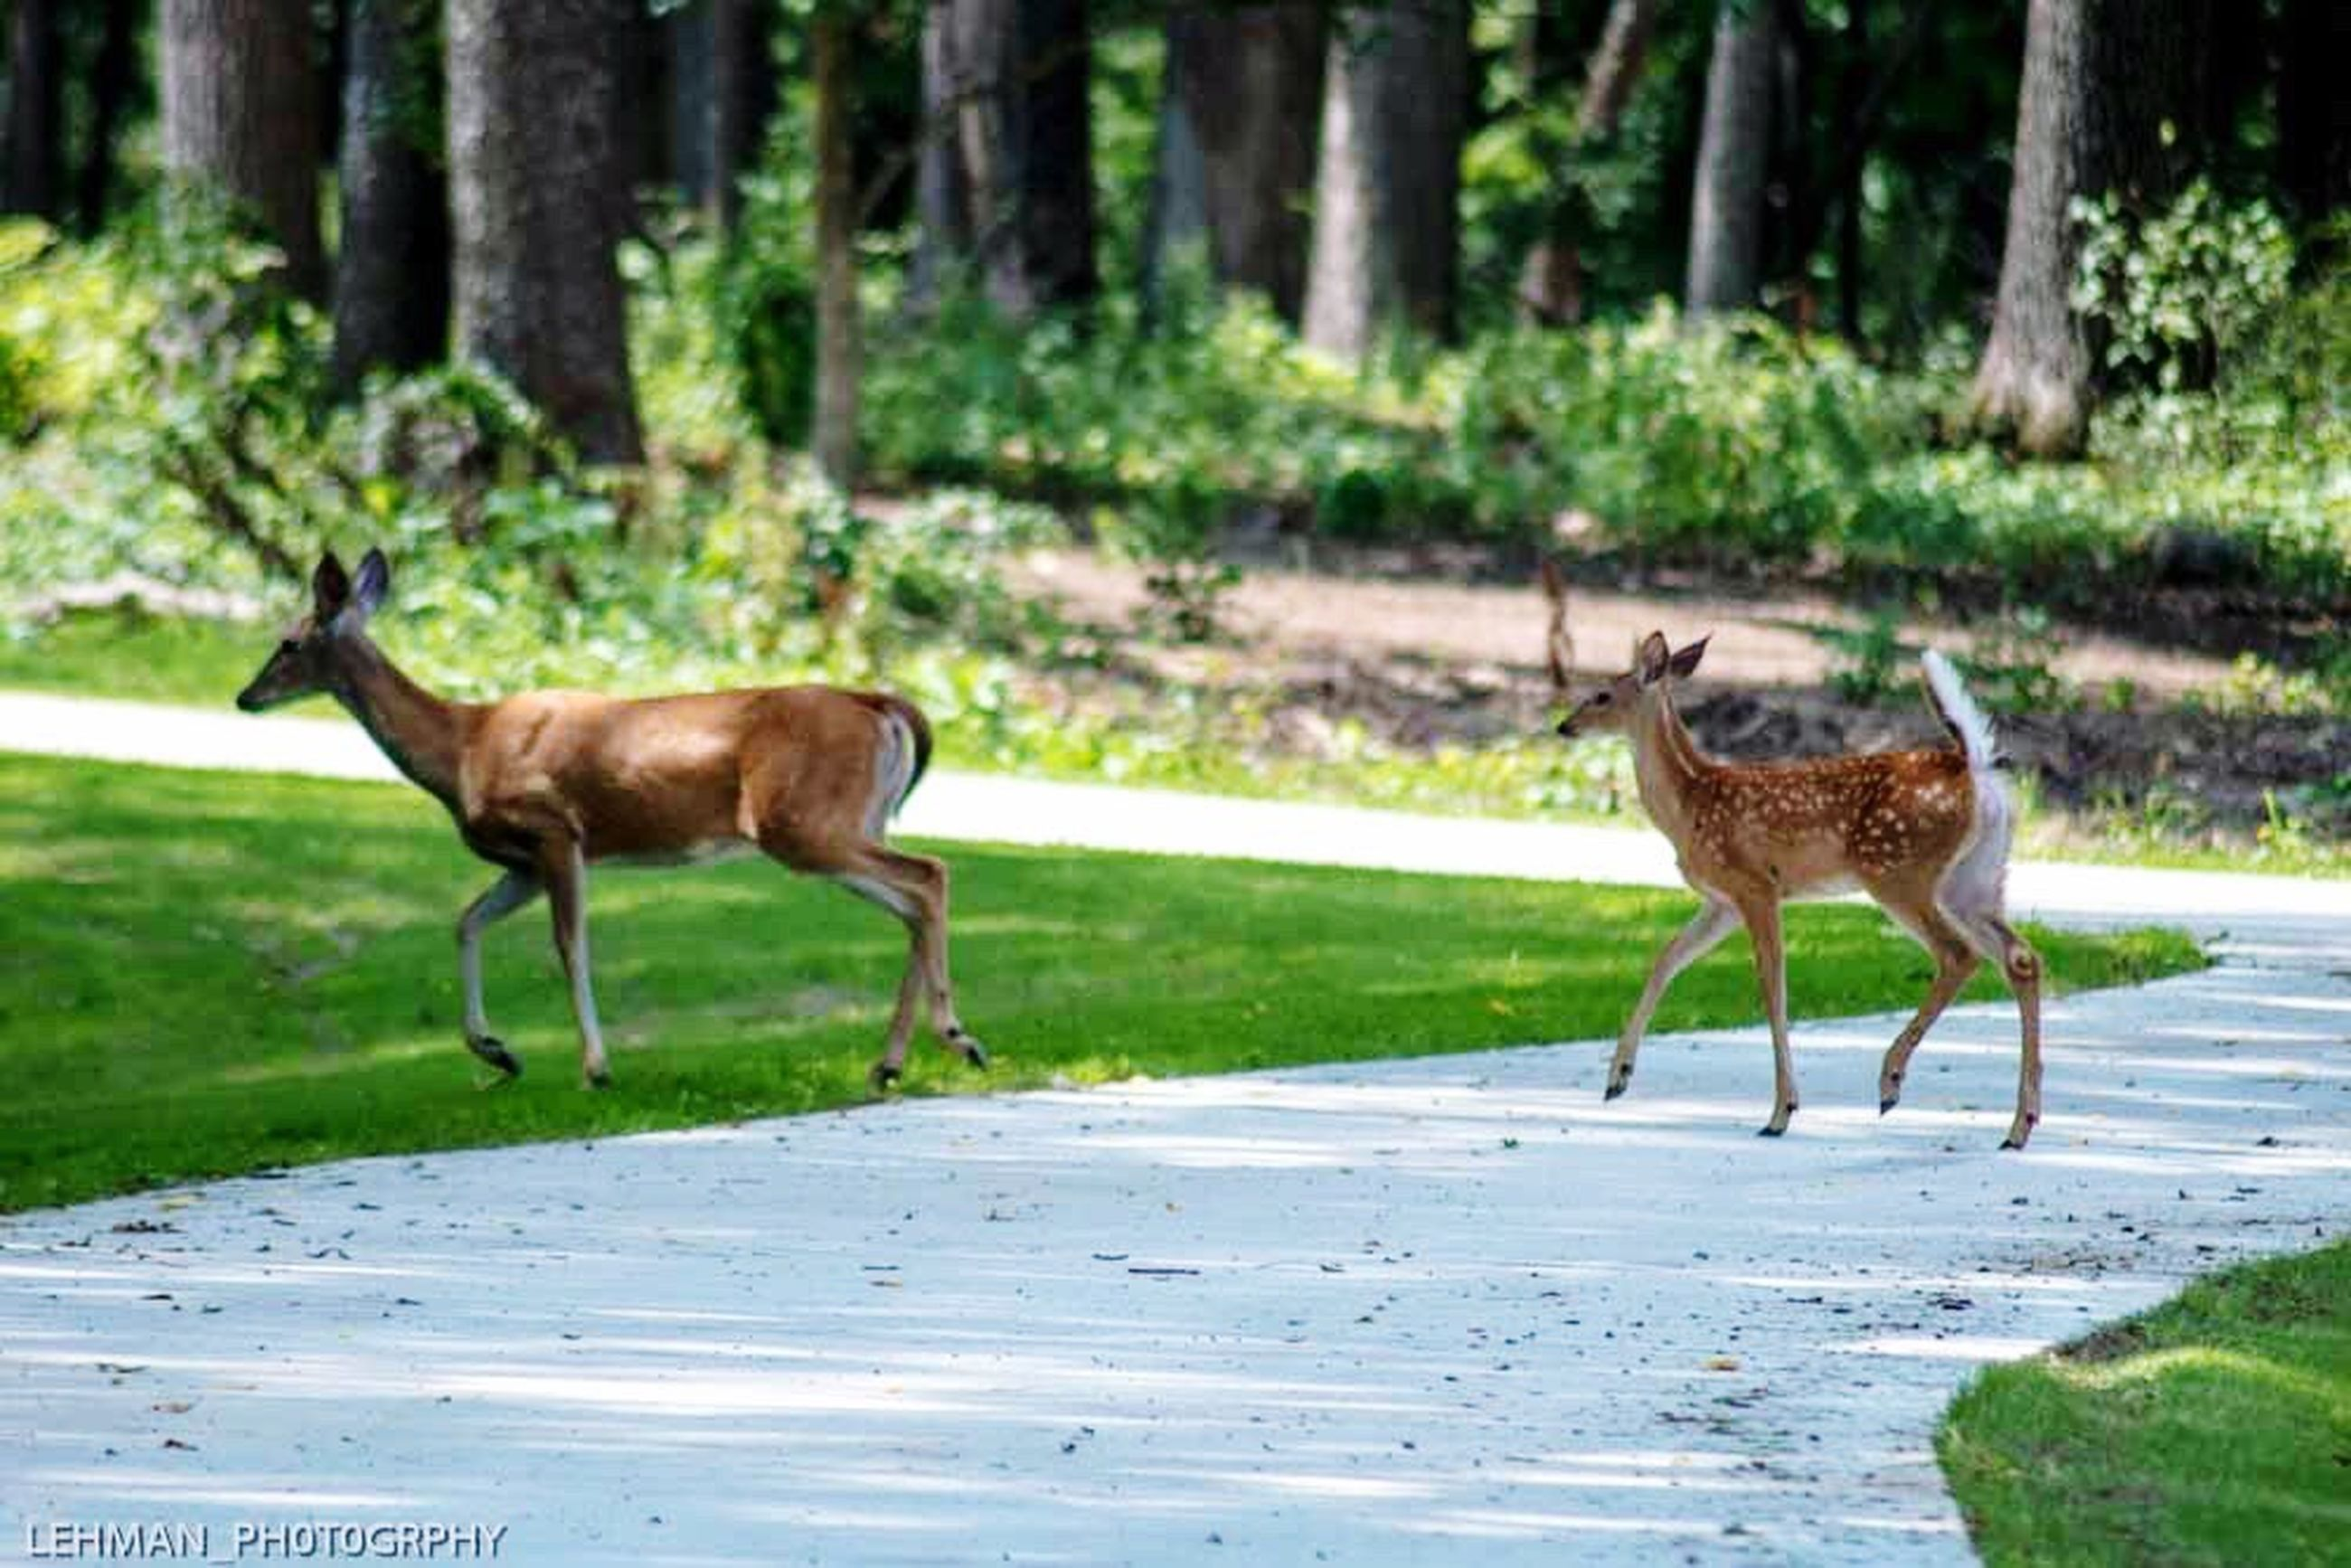 deer, animal themes, animals in the wild, nature, day, mammal, grass, outdoors, no people